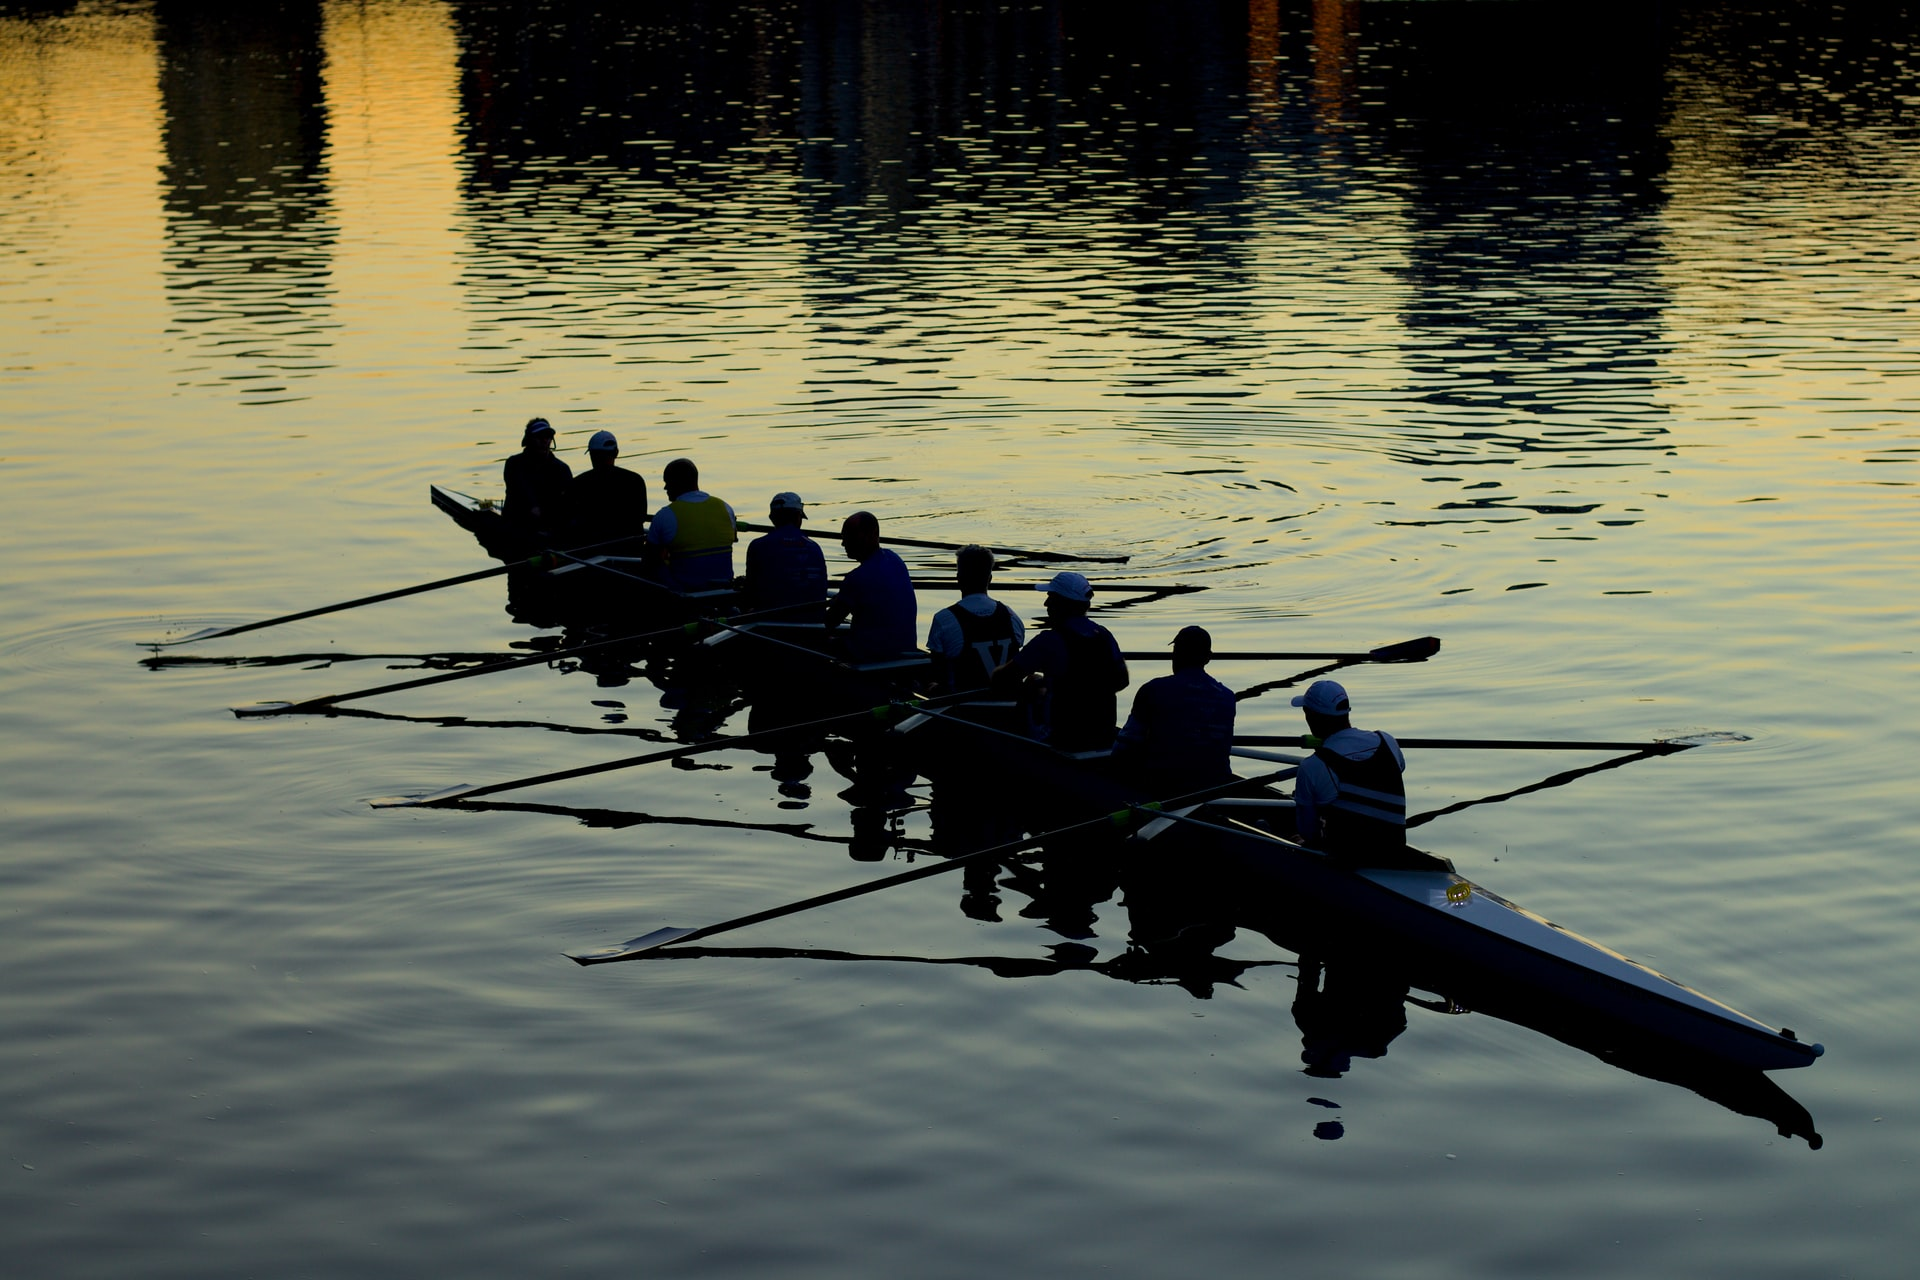 Silhouettes of people rowing a crew boat at sunset. Photo courtesy of Mitchell Luo on Unsplash.